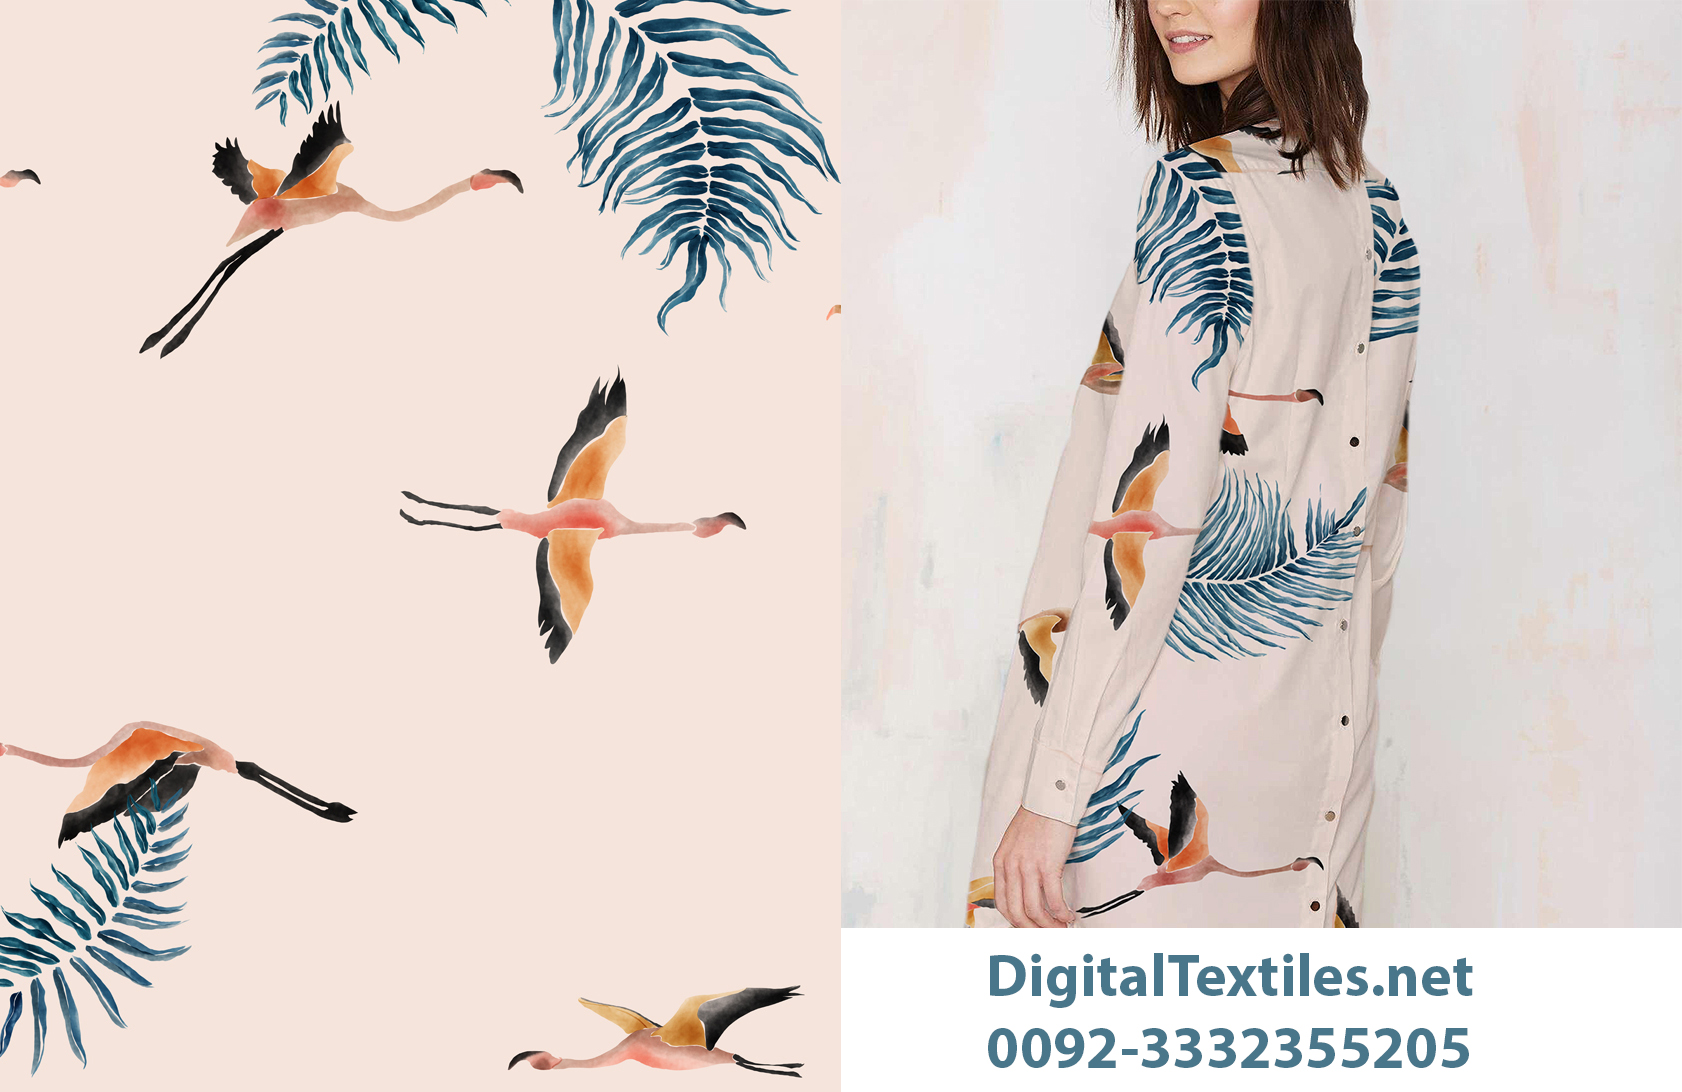 Digital Textile and Fashion students print and design thesis projects assignments services Pattern Design